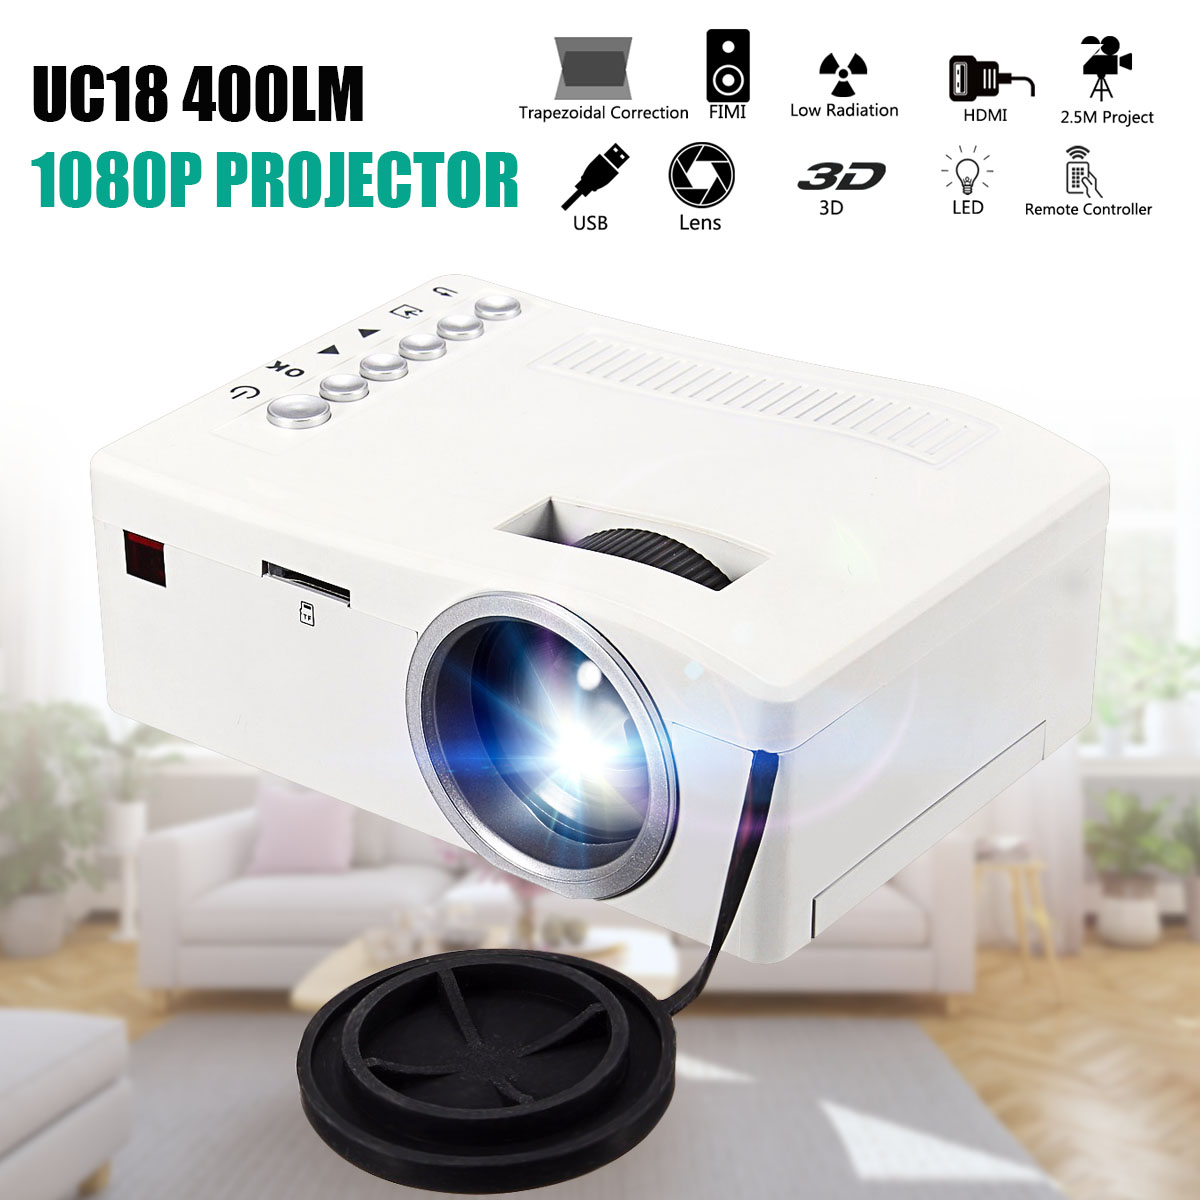 Full HD 1080P 320 x 180 Resolution Projector LED Mini Portable 400 Lumen Home Theater Cinema PC VGA USB SD AV Input HDMI gm50 1080p hd home theater led projector w sd hdmi vga av usb white black eu plug